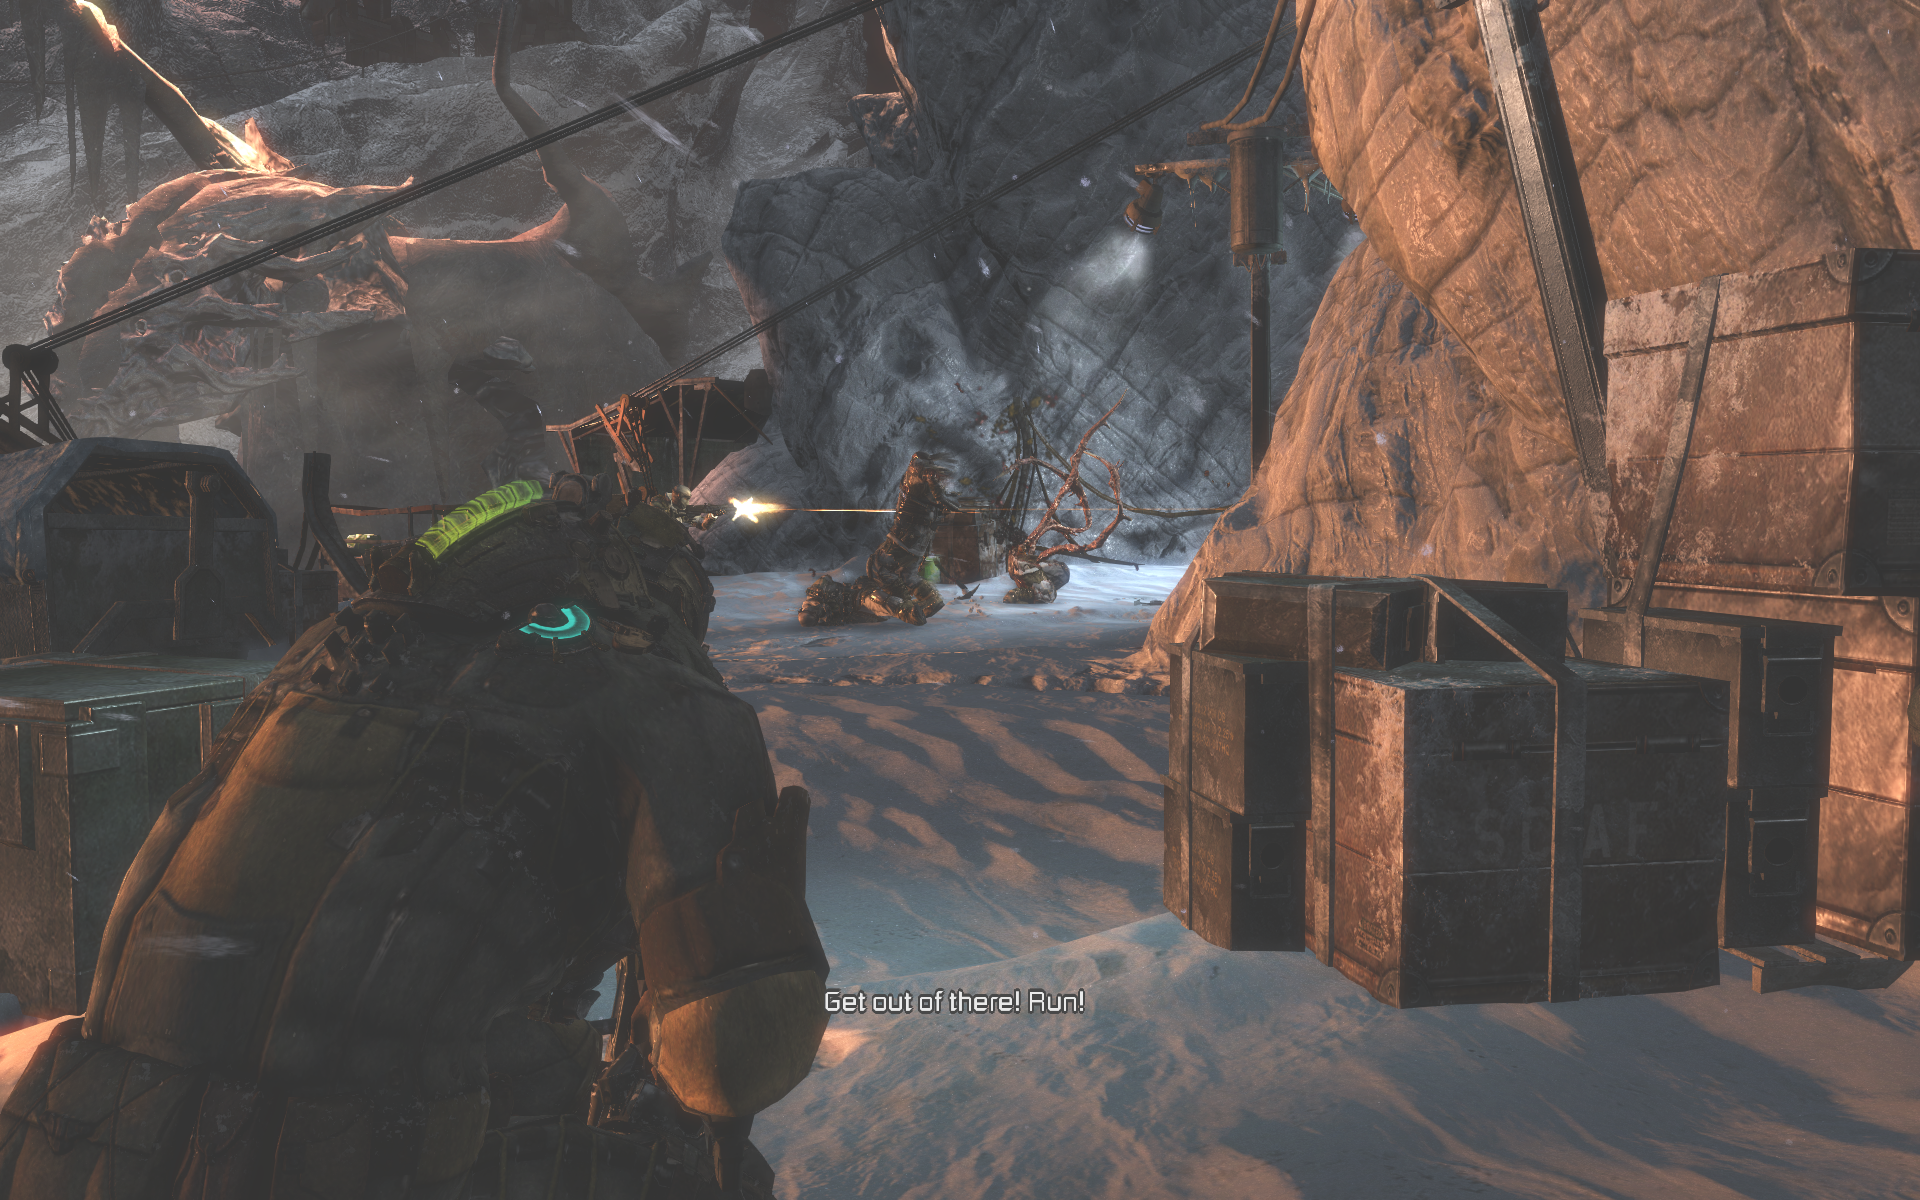 deadspace3 2013-03-04 23-21-48-12-crushed